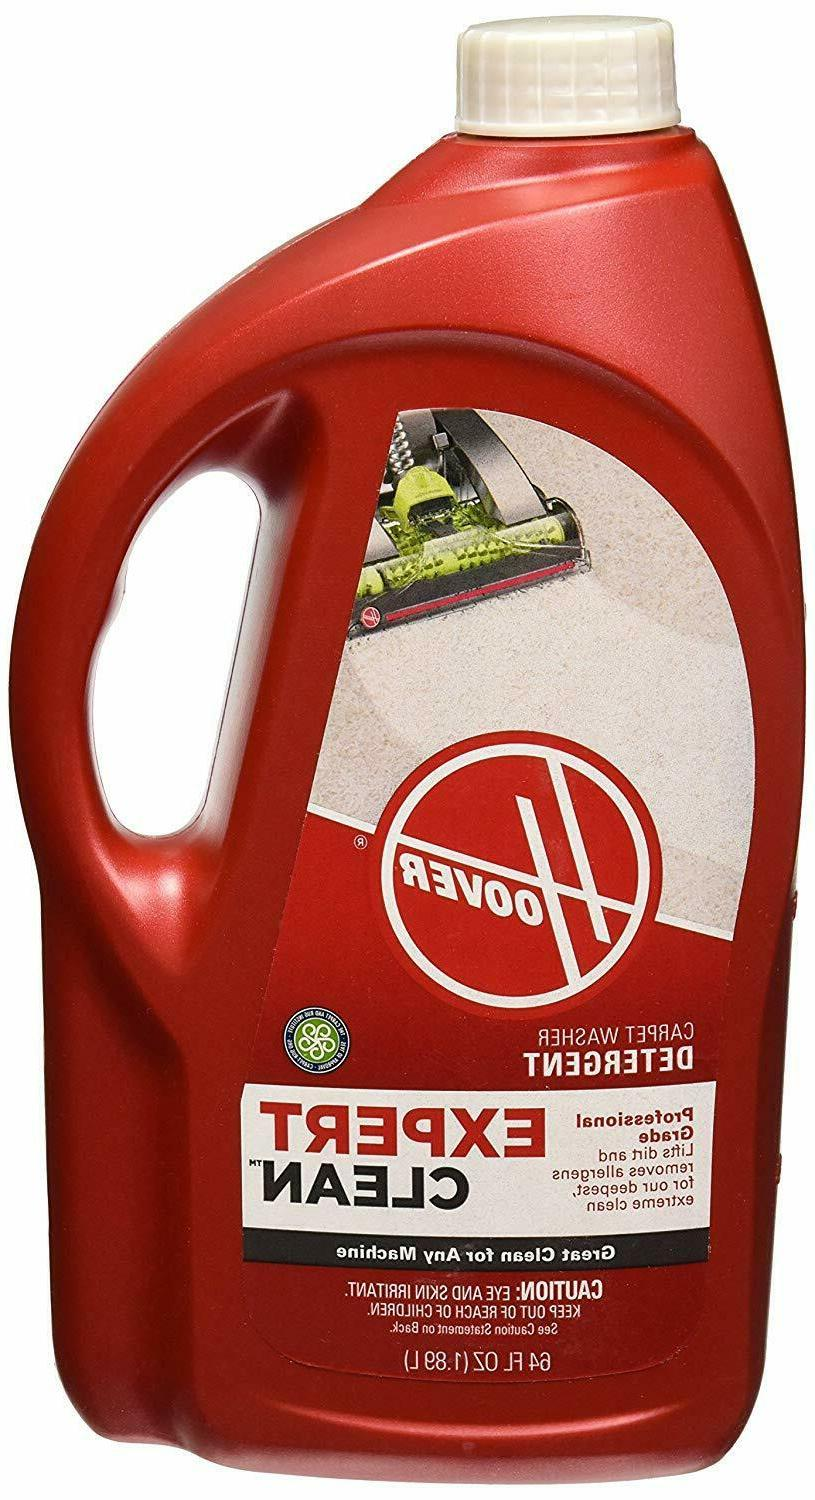 Hoover Carpet Washer Cleaner Cleaning Shampoo Detergent Expe